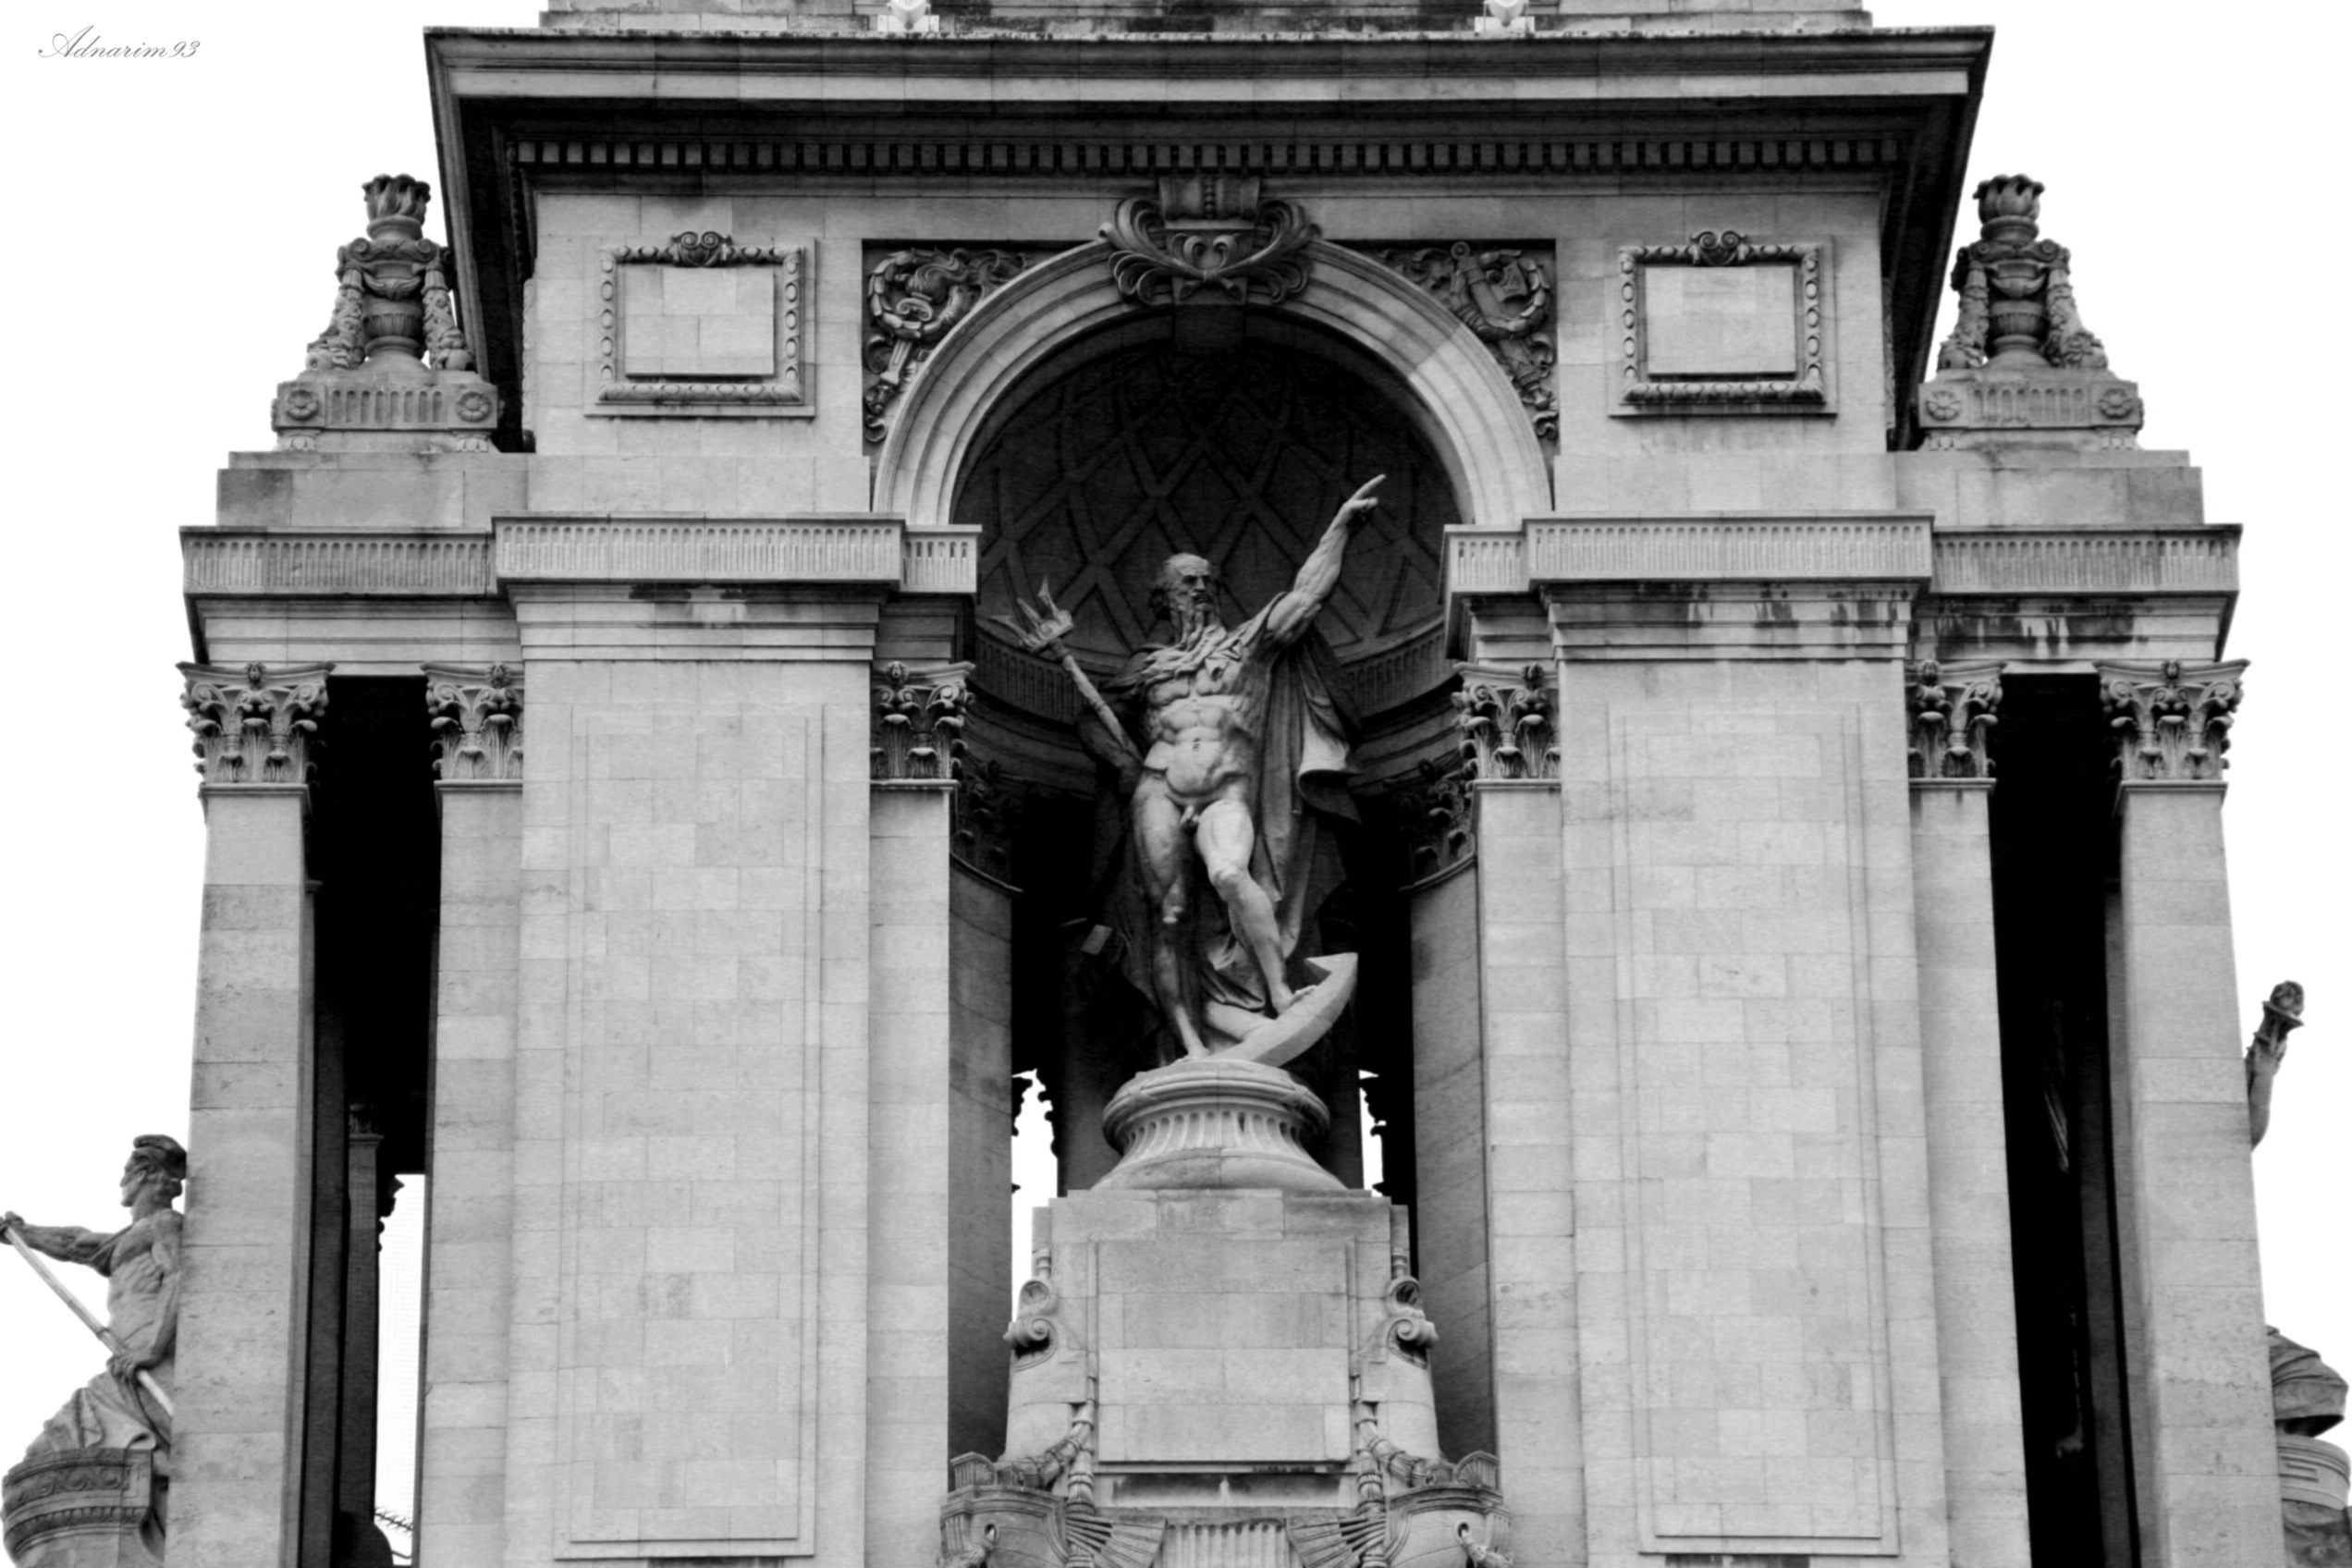 Triumphant Arch, Paris, France